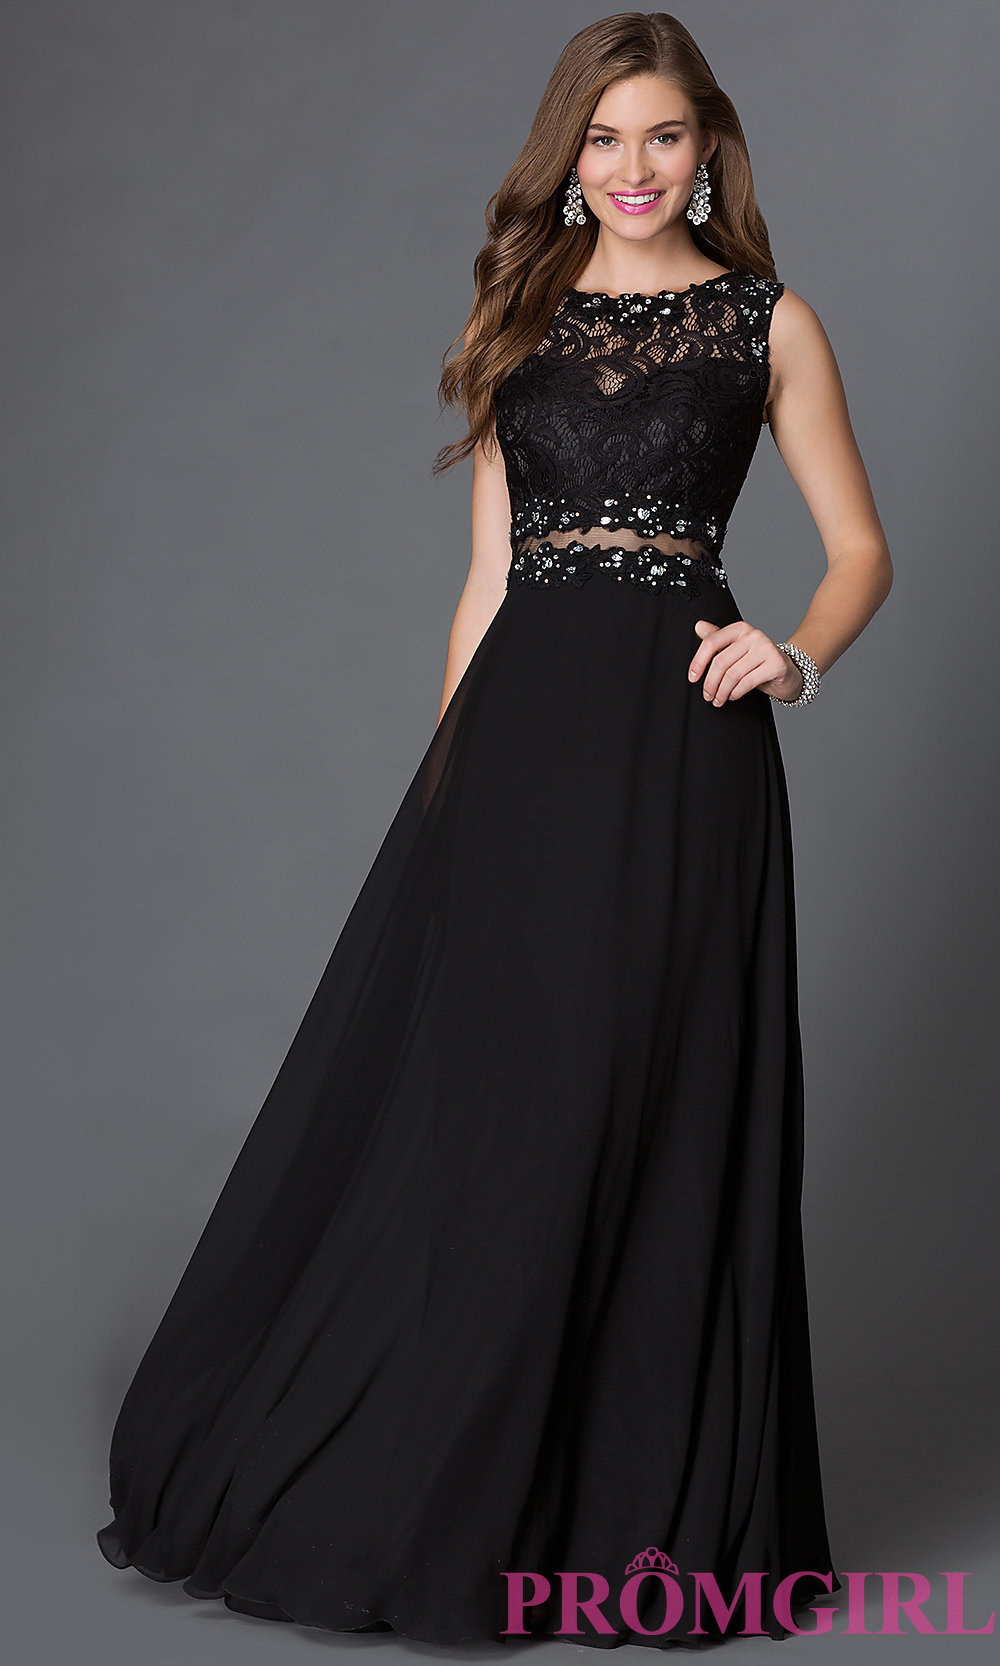 Gowns In Black And Perfect Choices - Dresses Ask